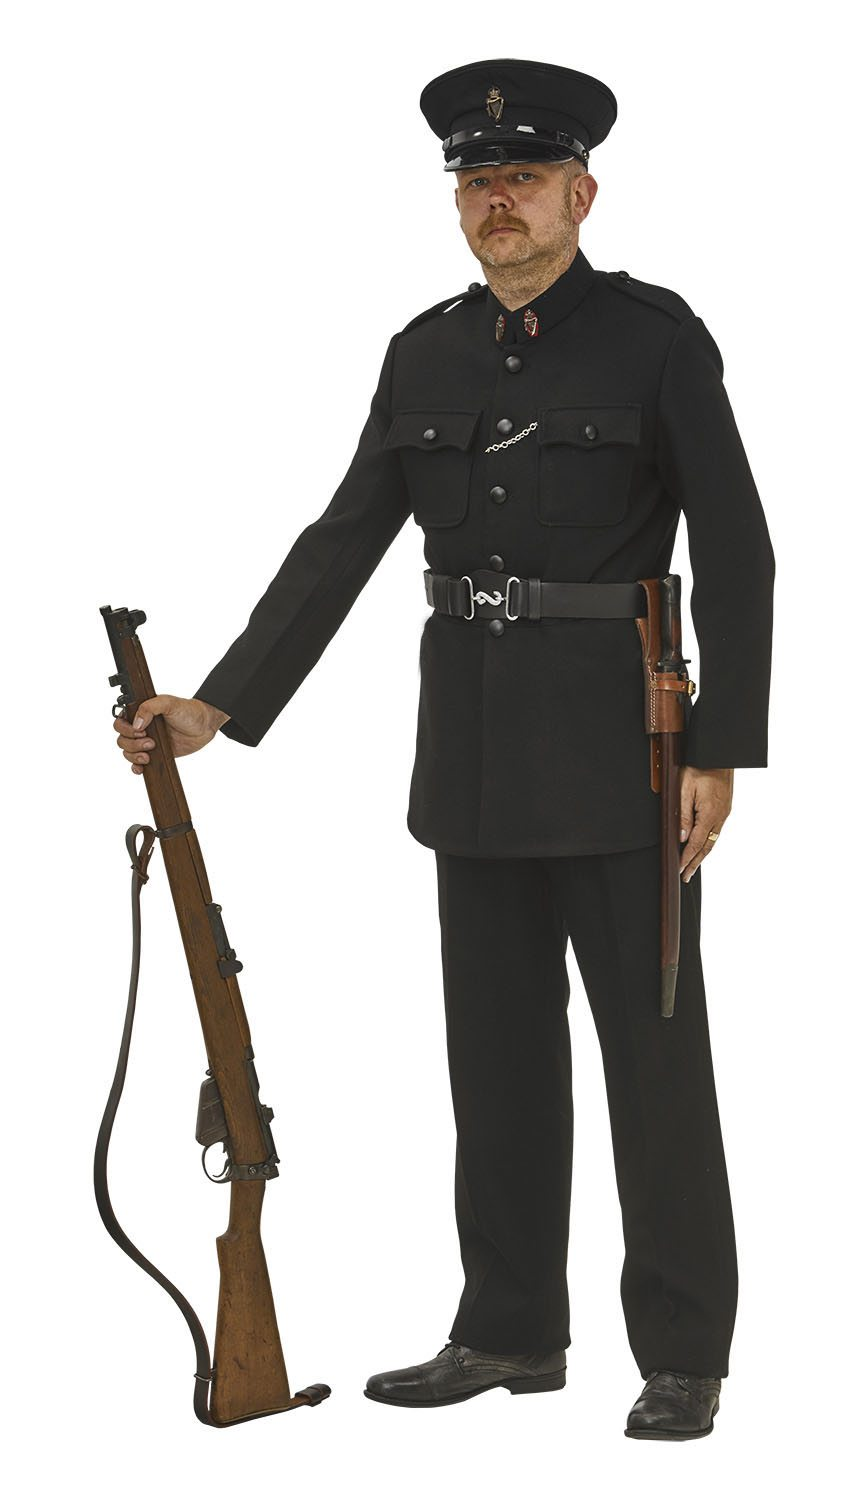 Royal Irish Constabulary uniform